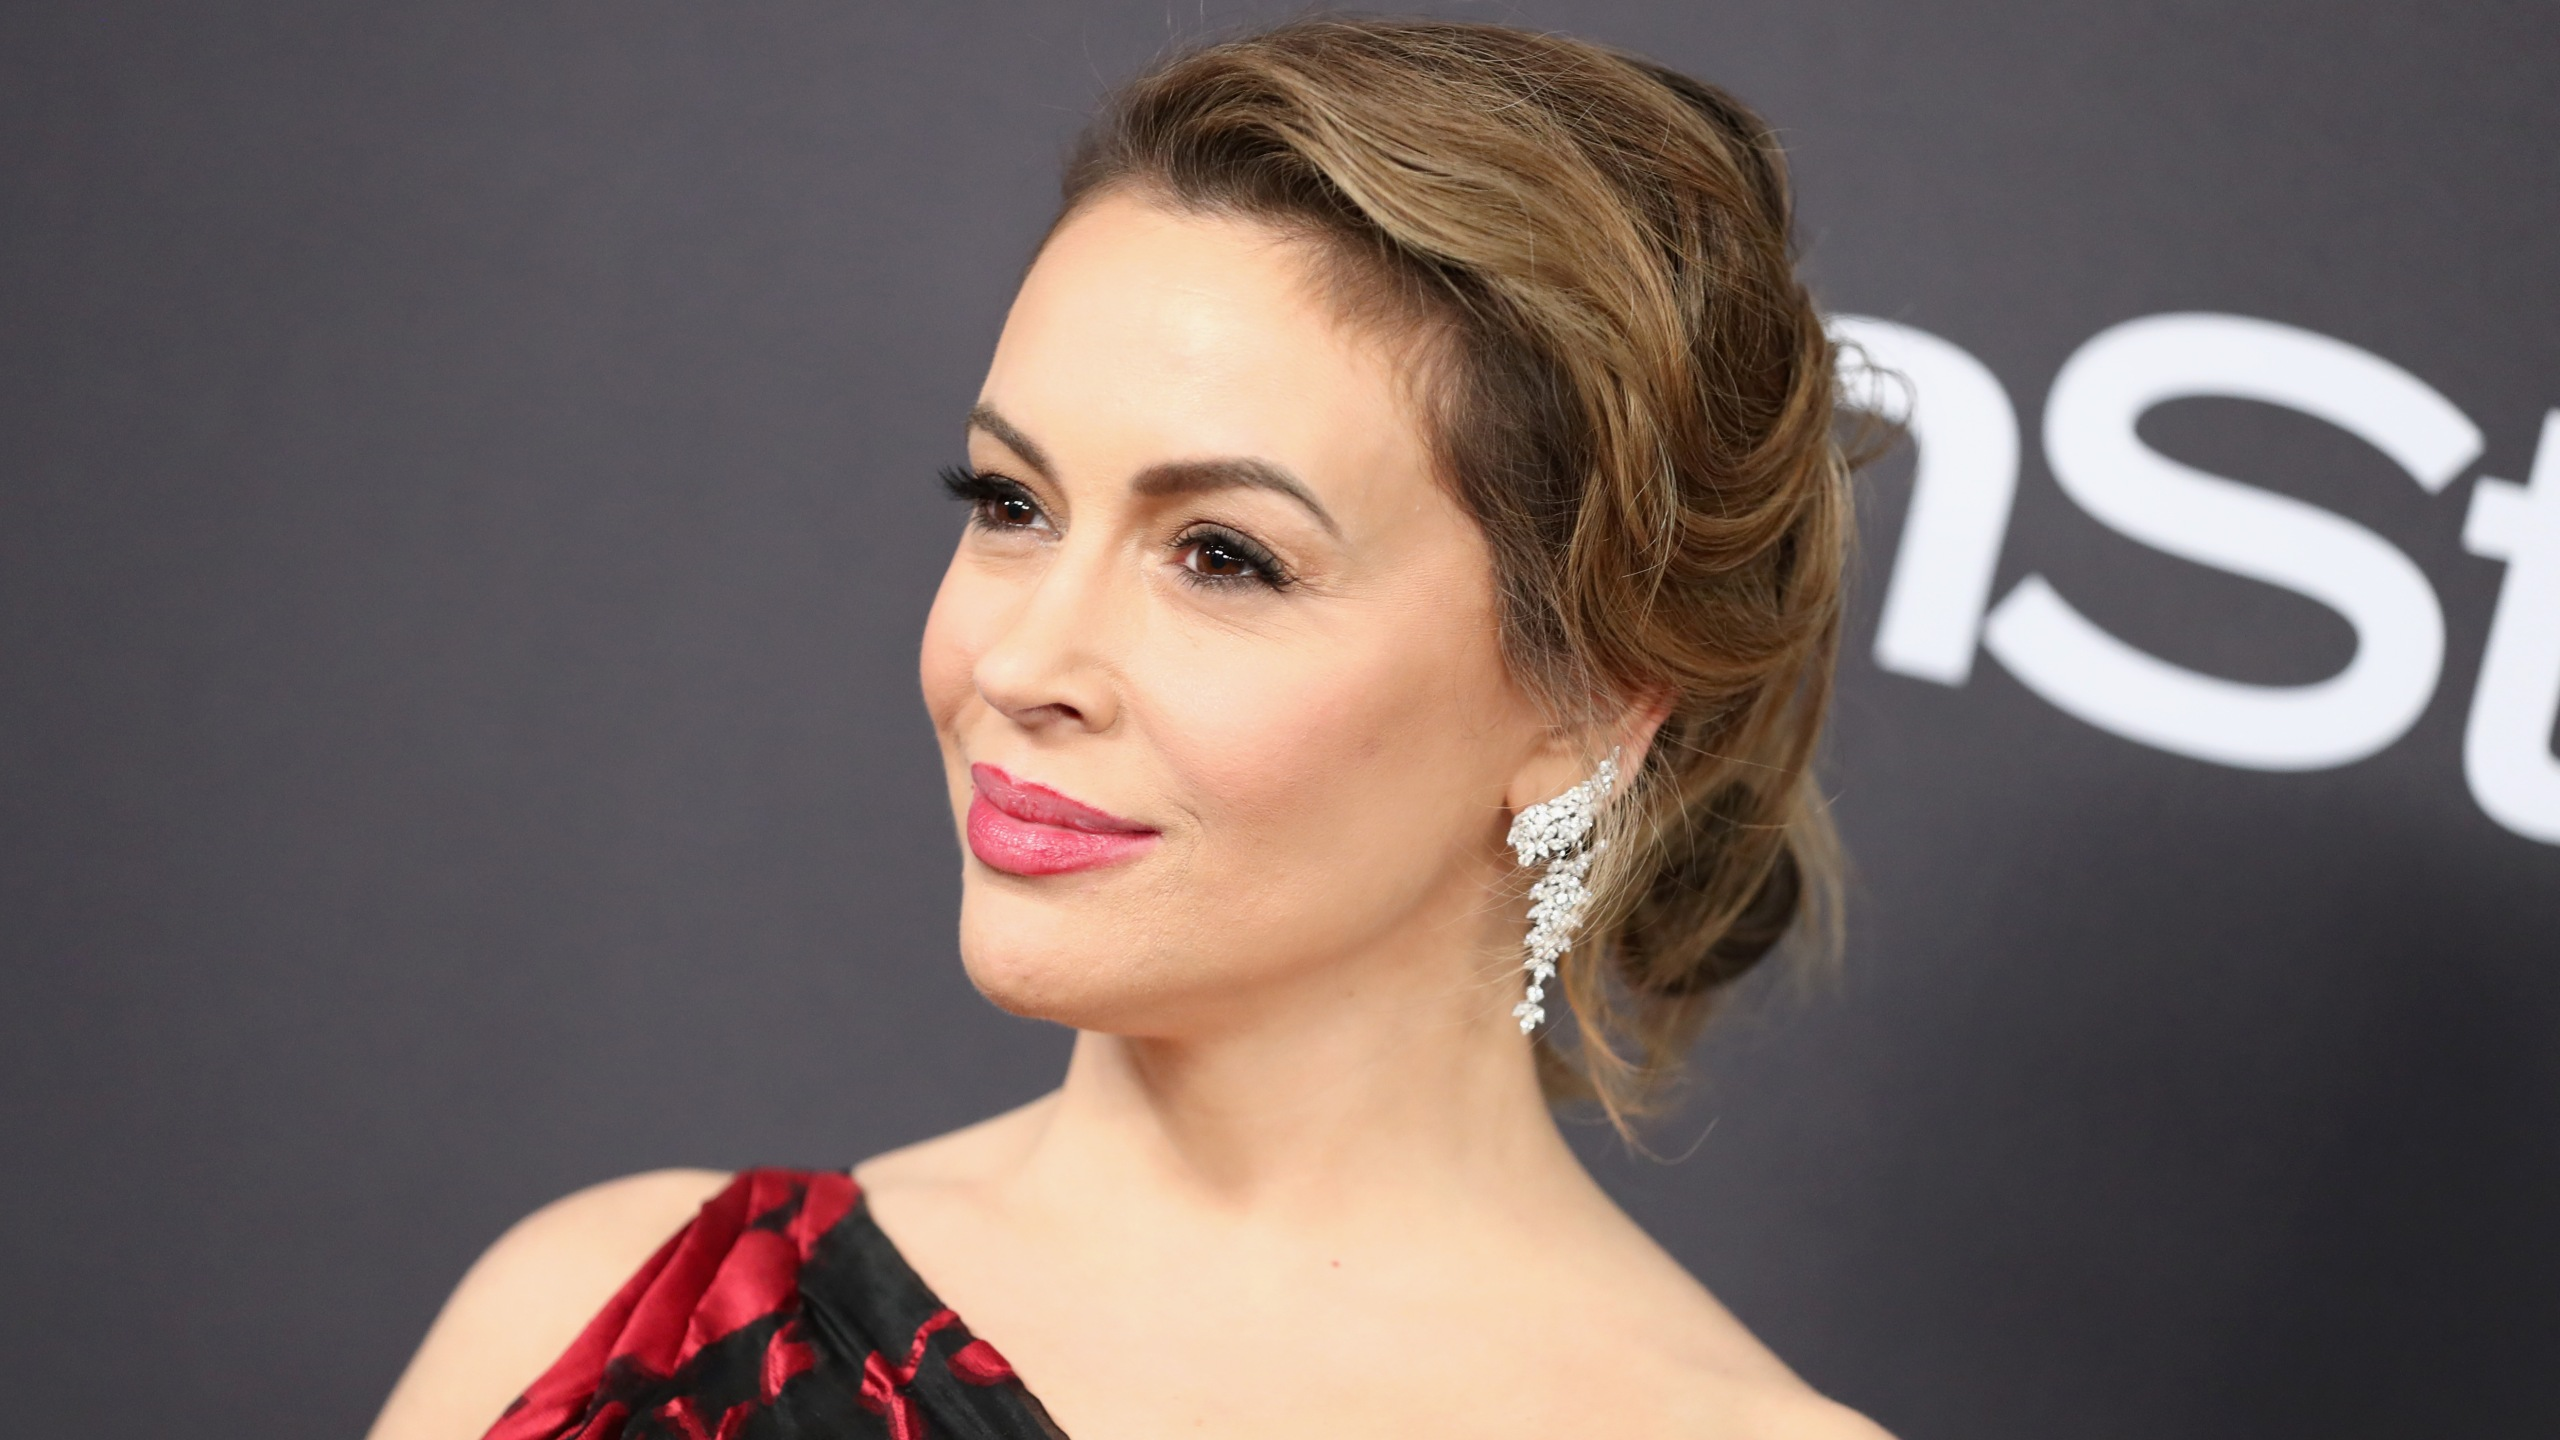 Alyssa Milano attends the InStyle And Warner Bros. Golden Globes after party at the Beverly Hilton Hotel on Jan. 6, 2019, in Beverly Hills. (Credit: Rich Fury/Getty Images)